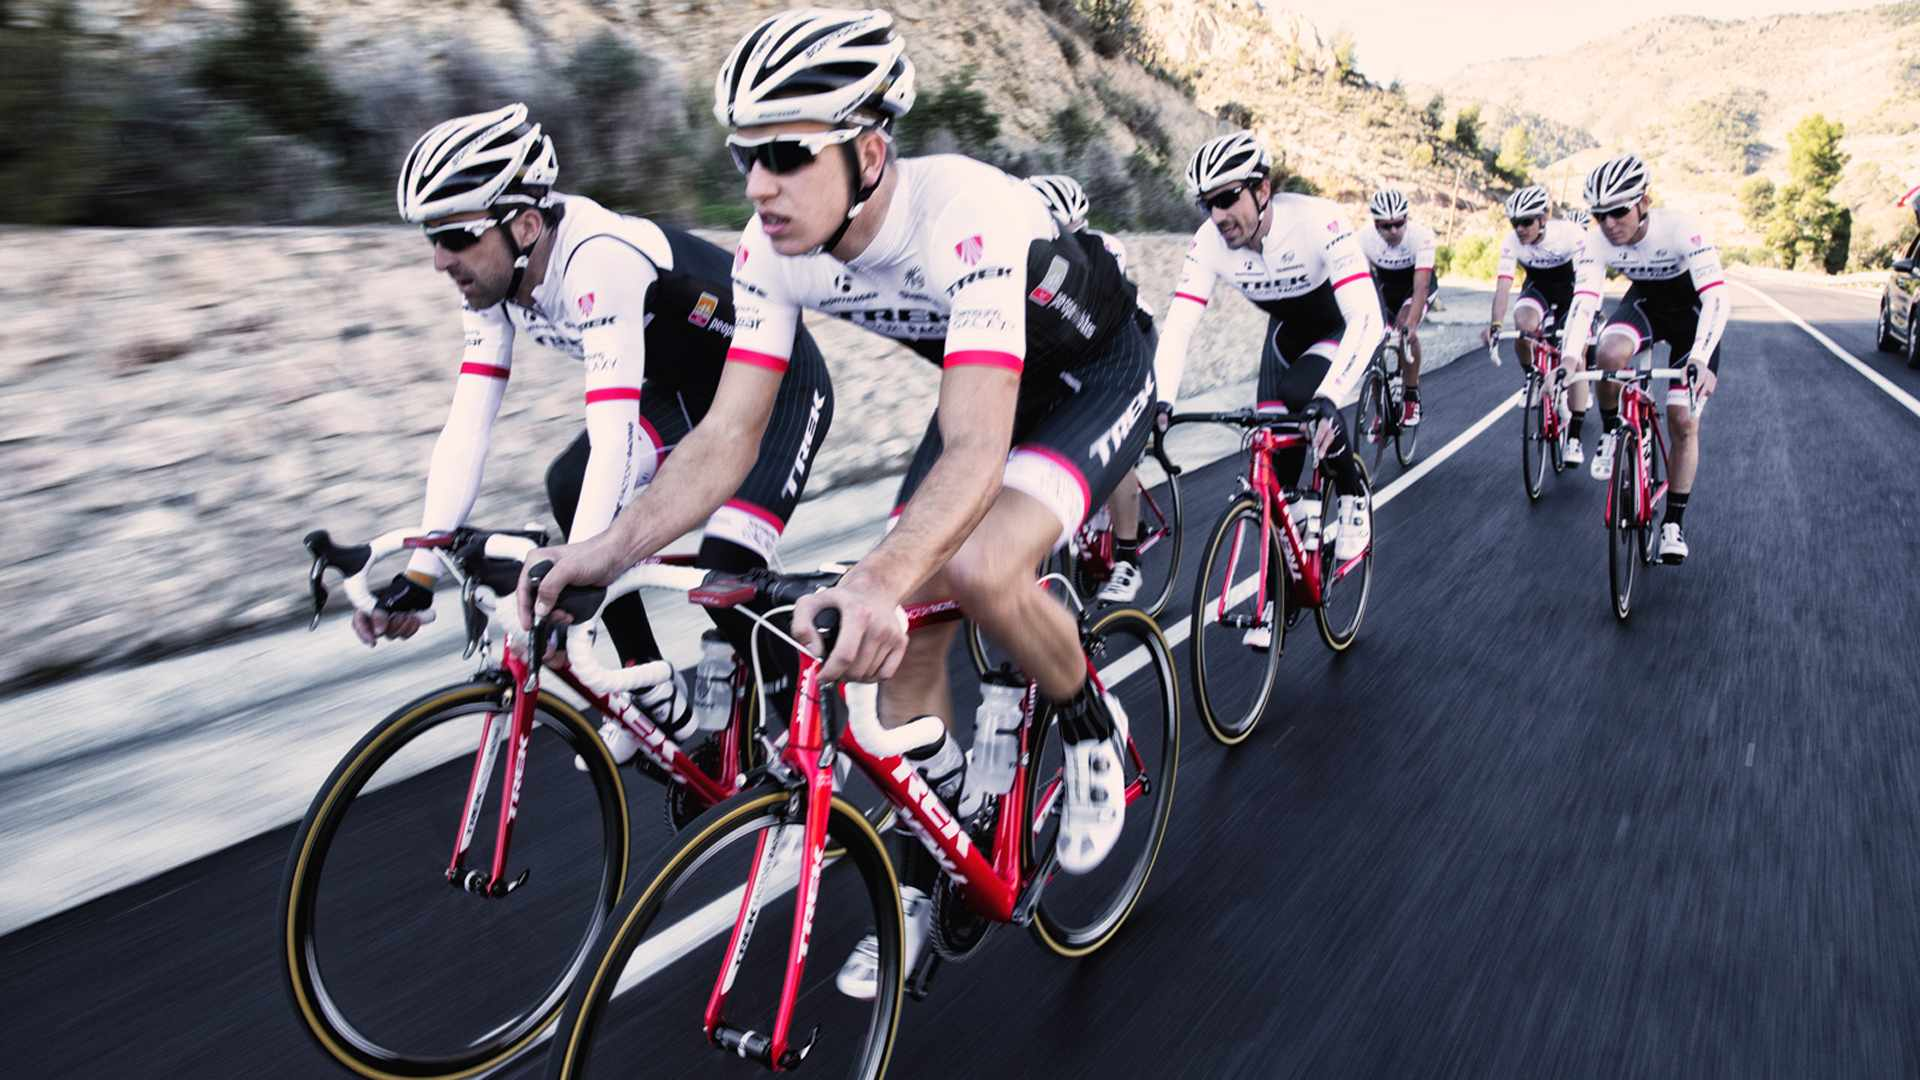 The new Viper Red Trek Factory Racing bikes look great with the red flashes on the team's otherwise black and white race kit